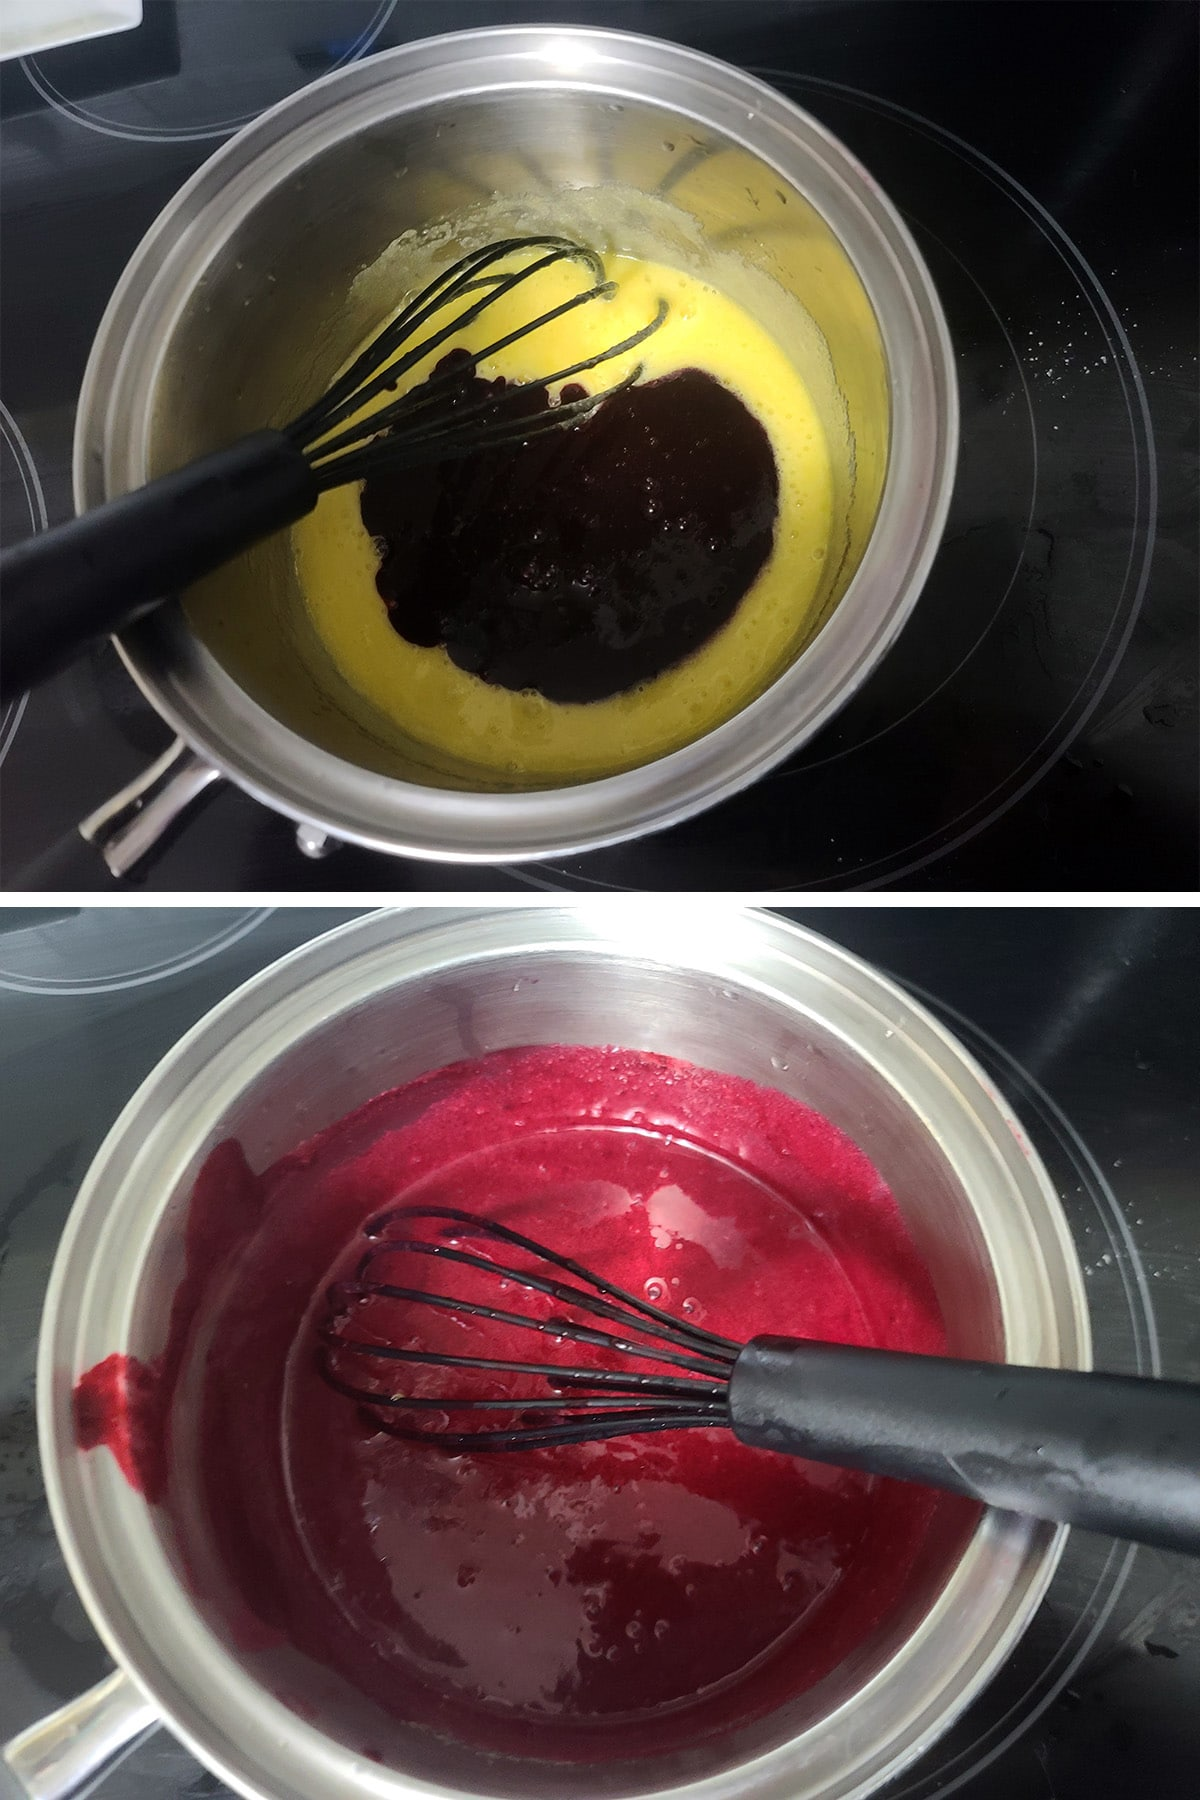 Blackcurrant pulp being whisked into the egg mixture.